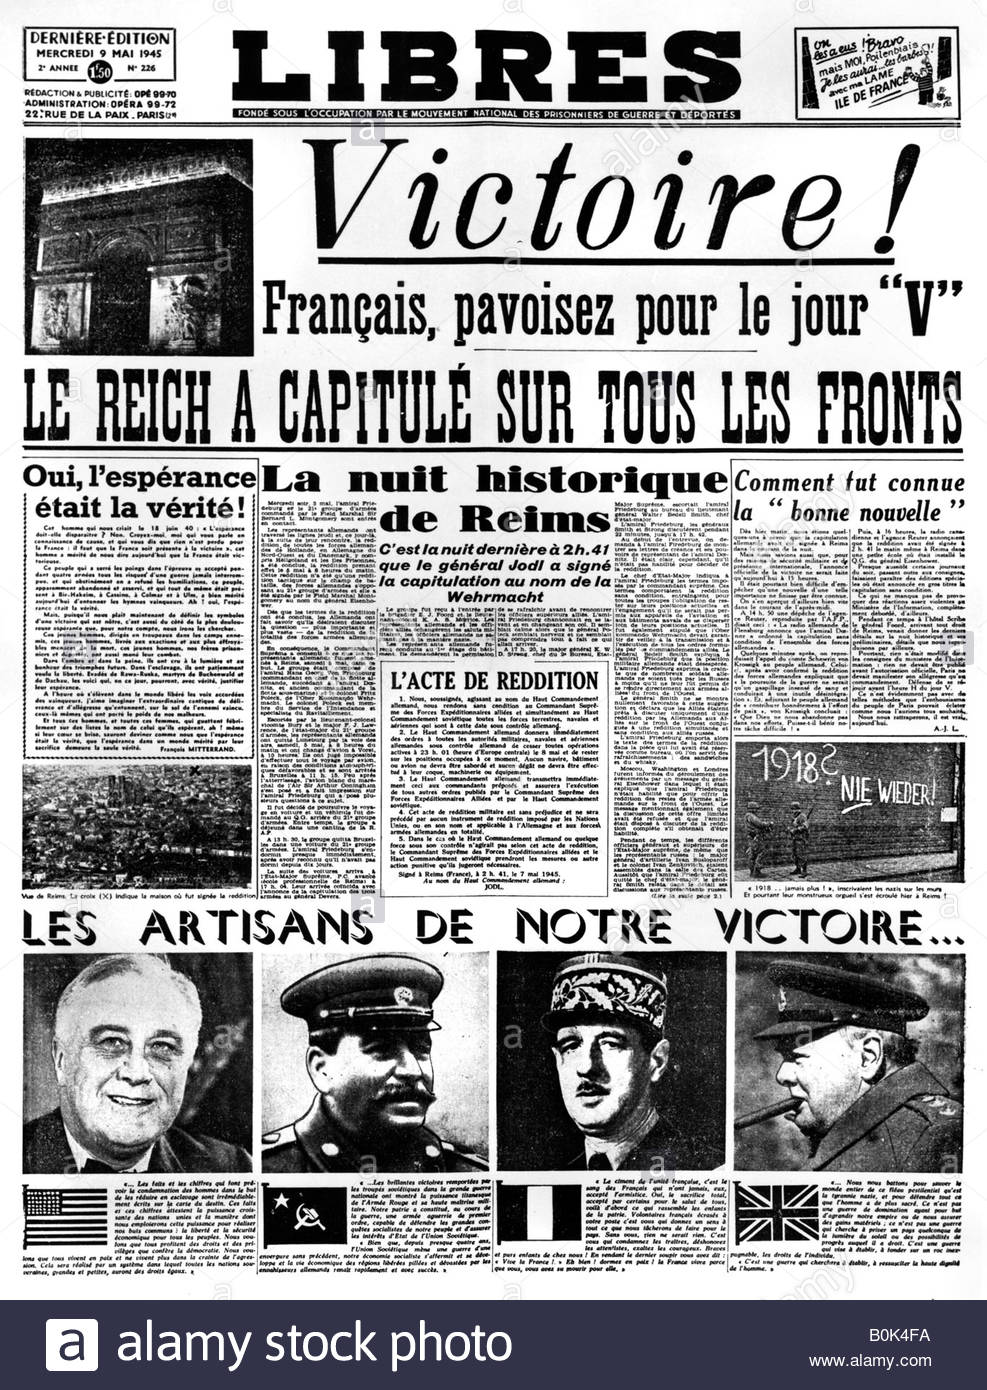 Victory!, front page of 'Libres' newspaper, 9 May 1945. - Stock Image